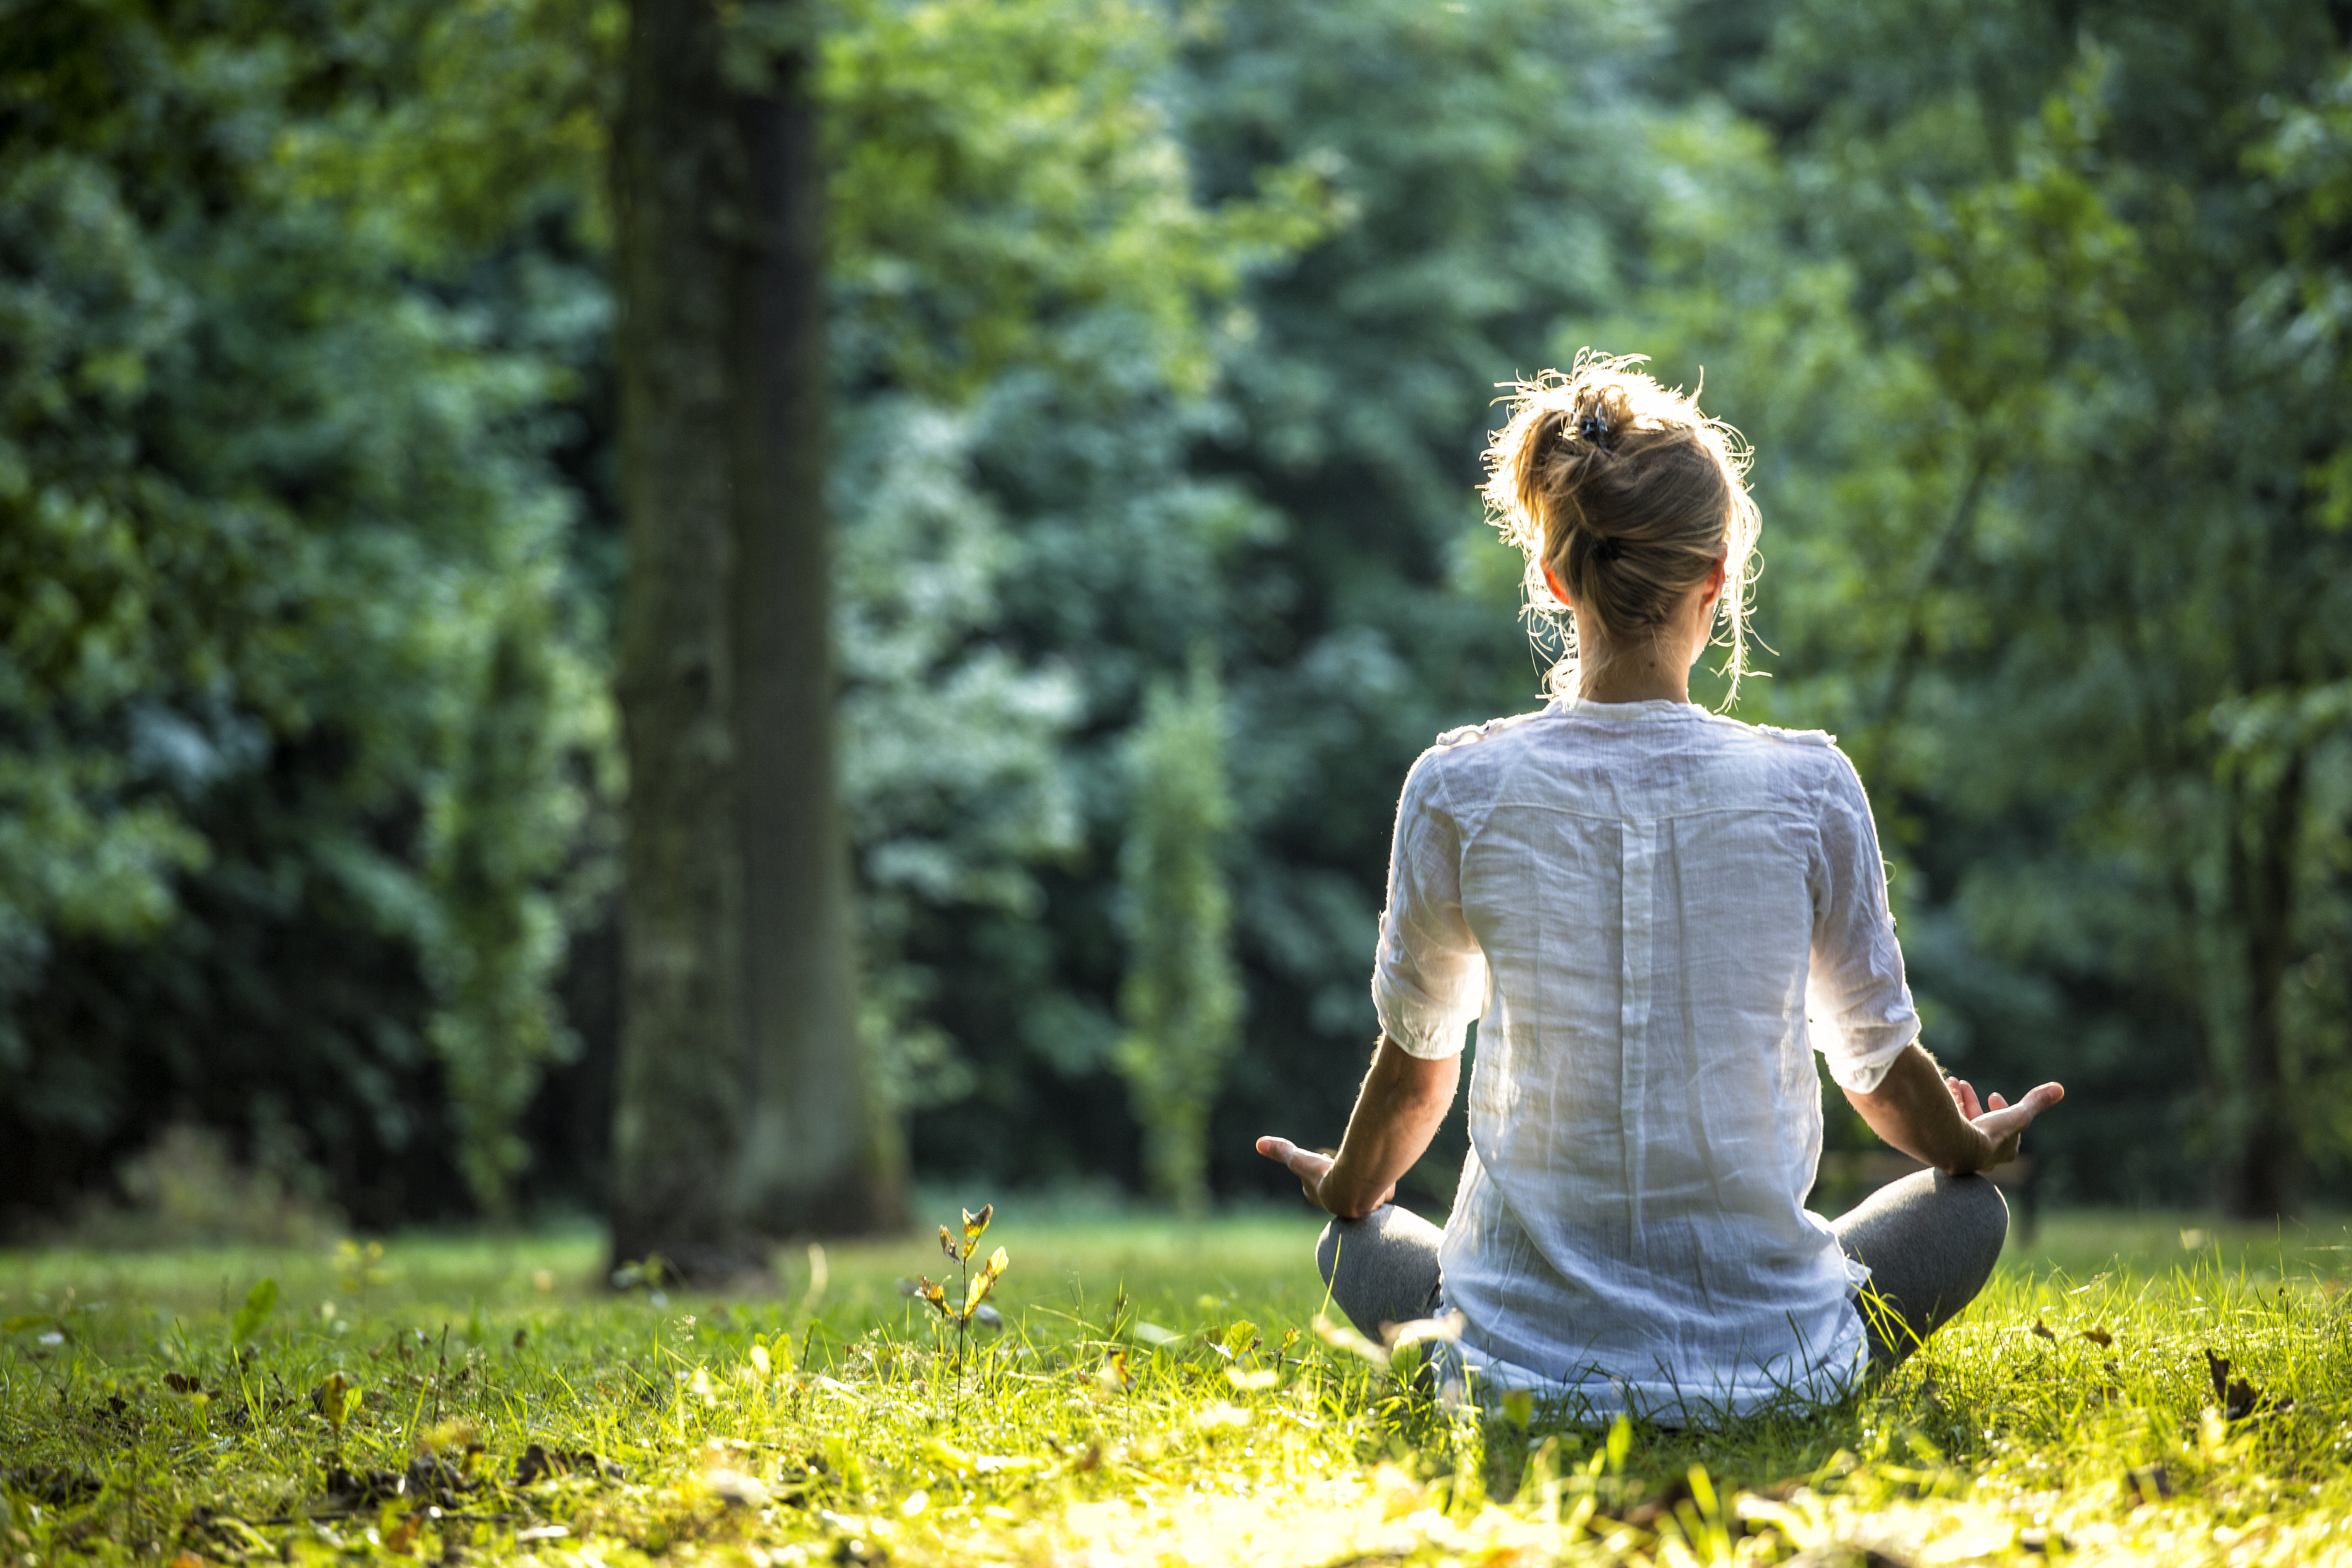 Relaxation and Meditation Could Help You Shed the Stress of Daily Life